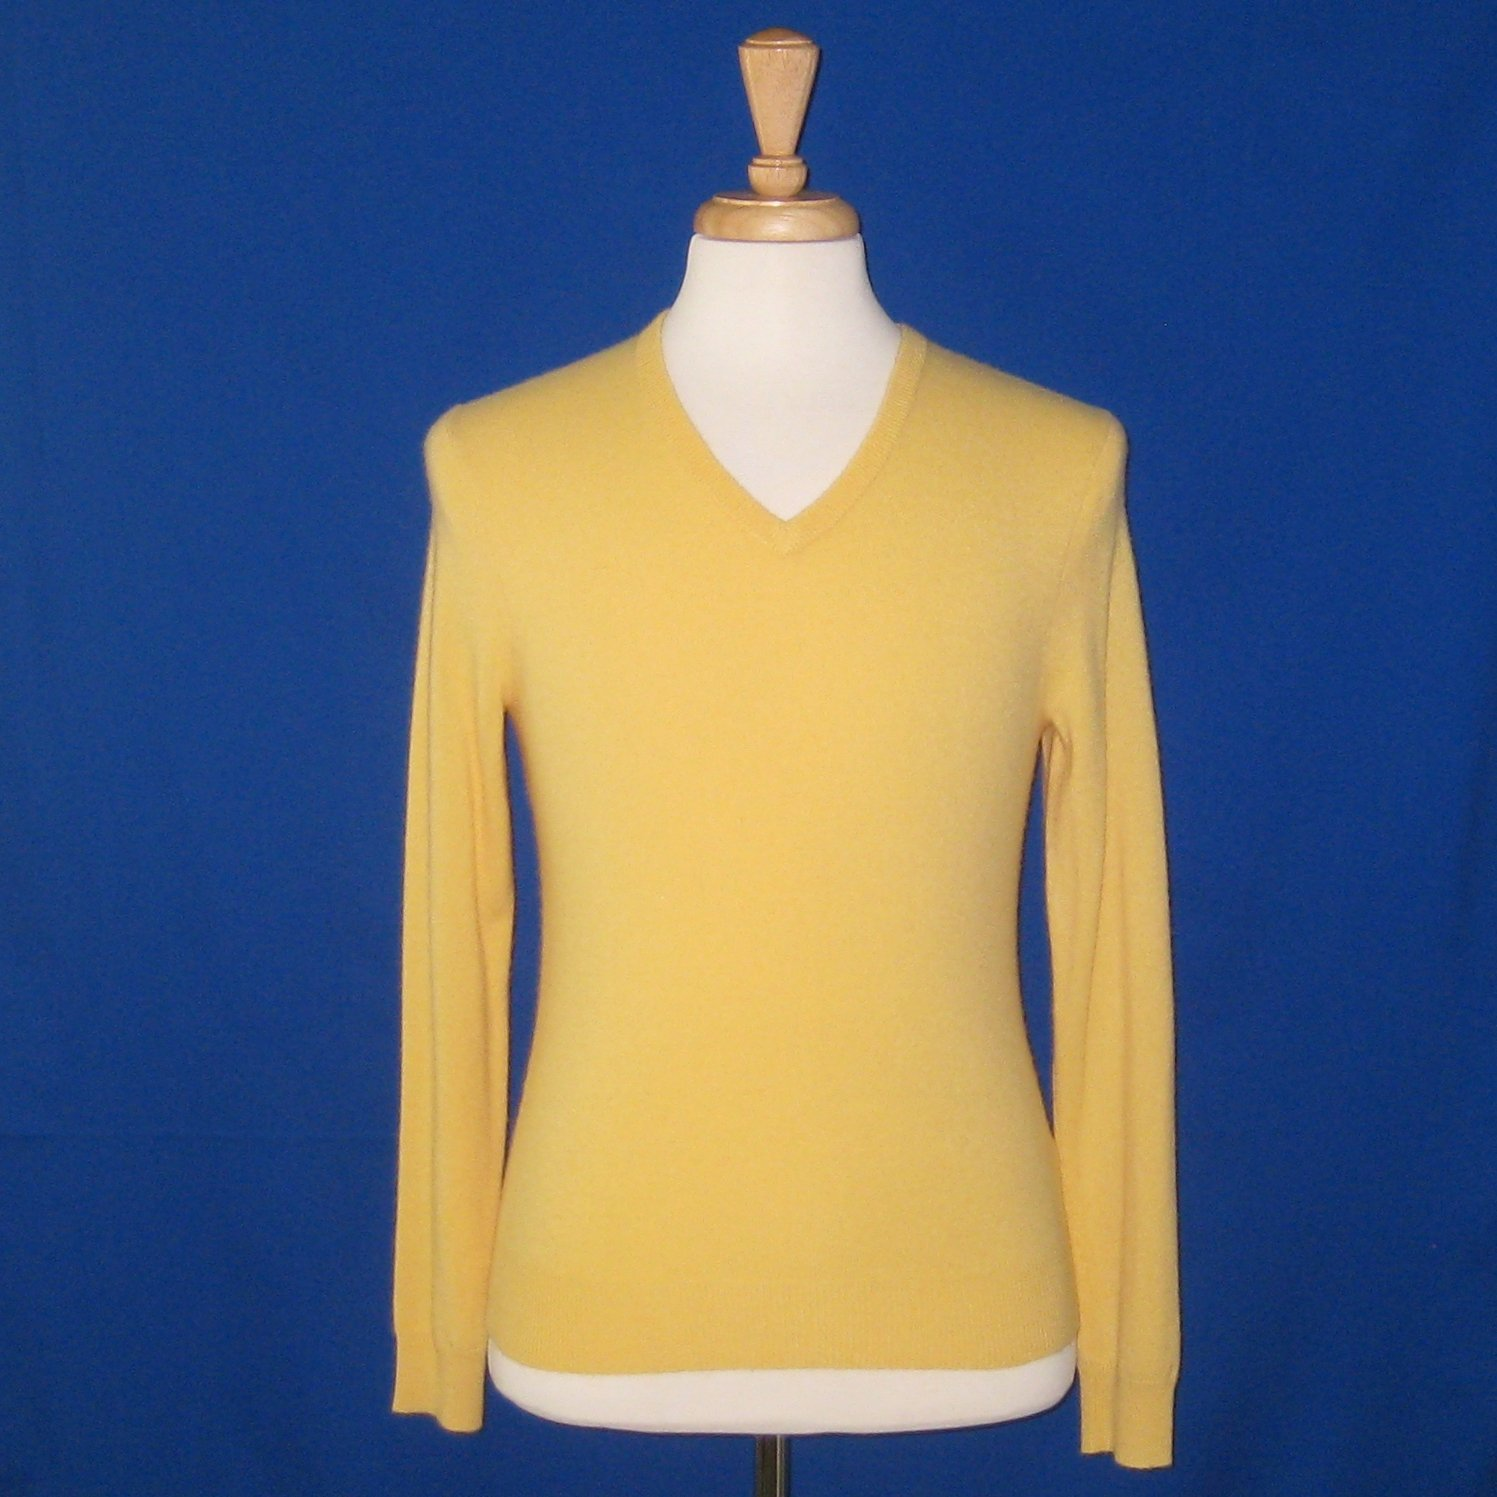 NWT Polo Ralph Lauren Men's Yellow 100% Cashmere Knit L/S V-Neck Sweater - S